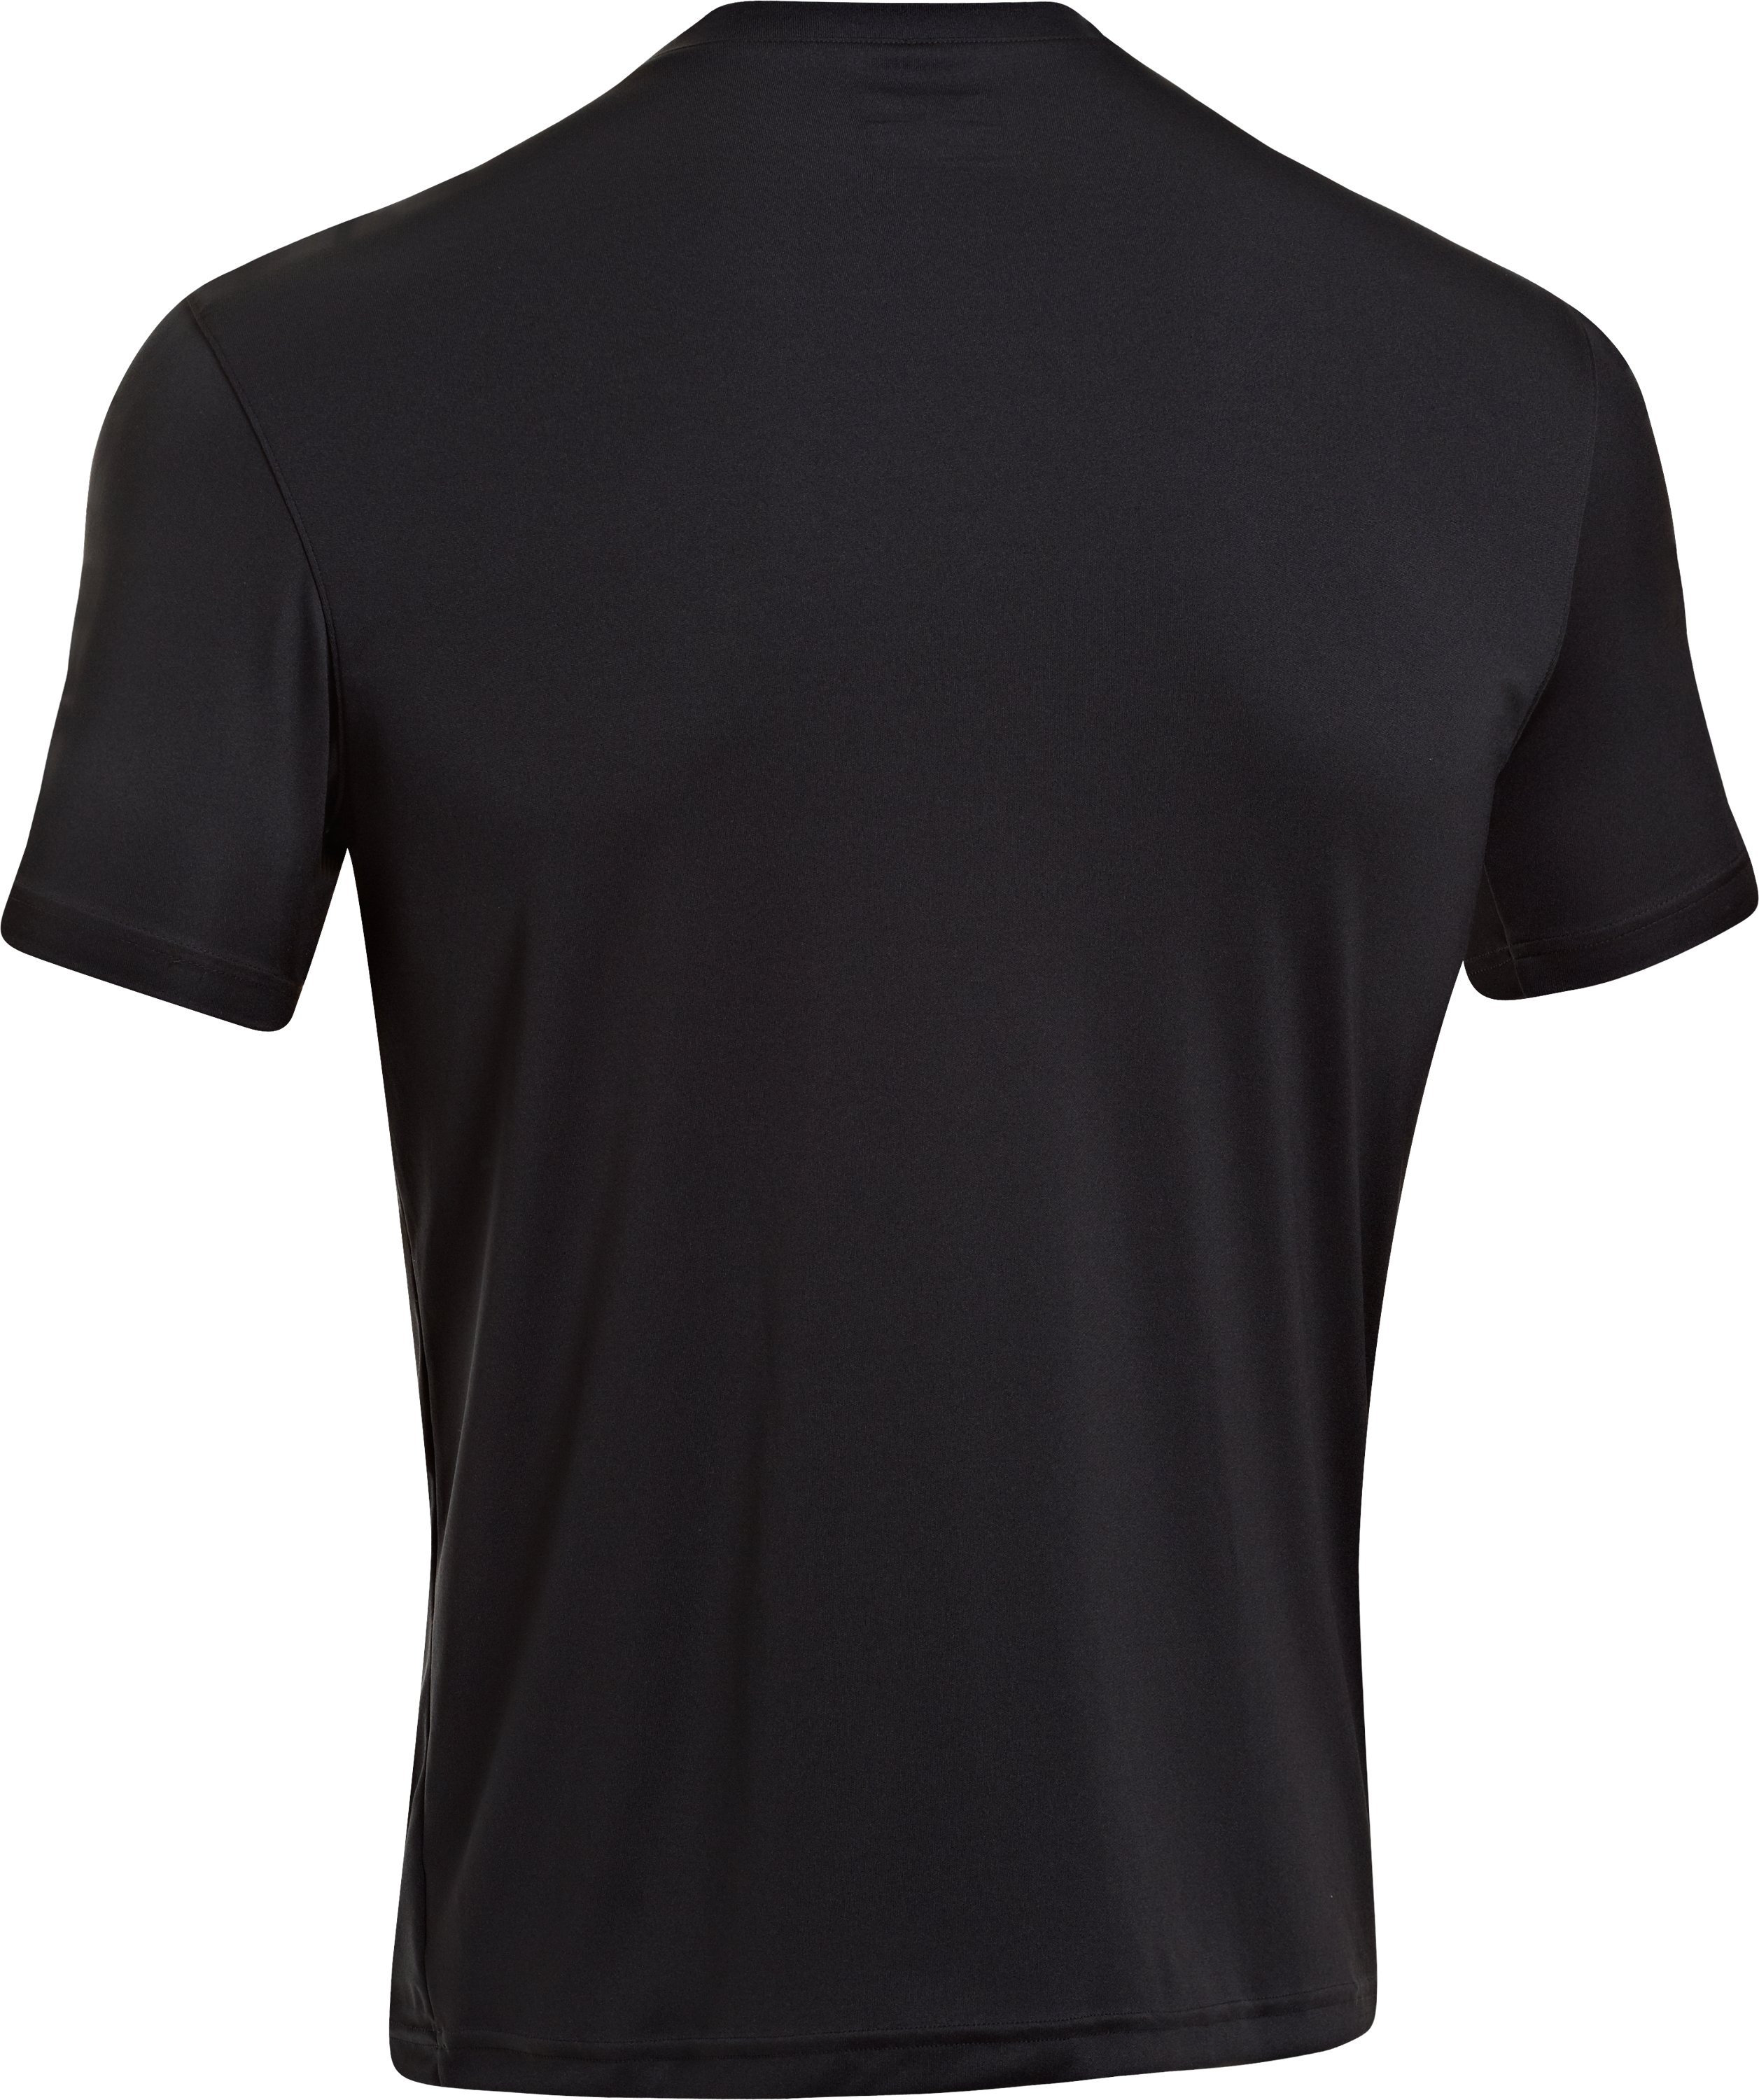 Men's HeatGear® Tactical Short Sleeve T-Shirt, Black